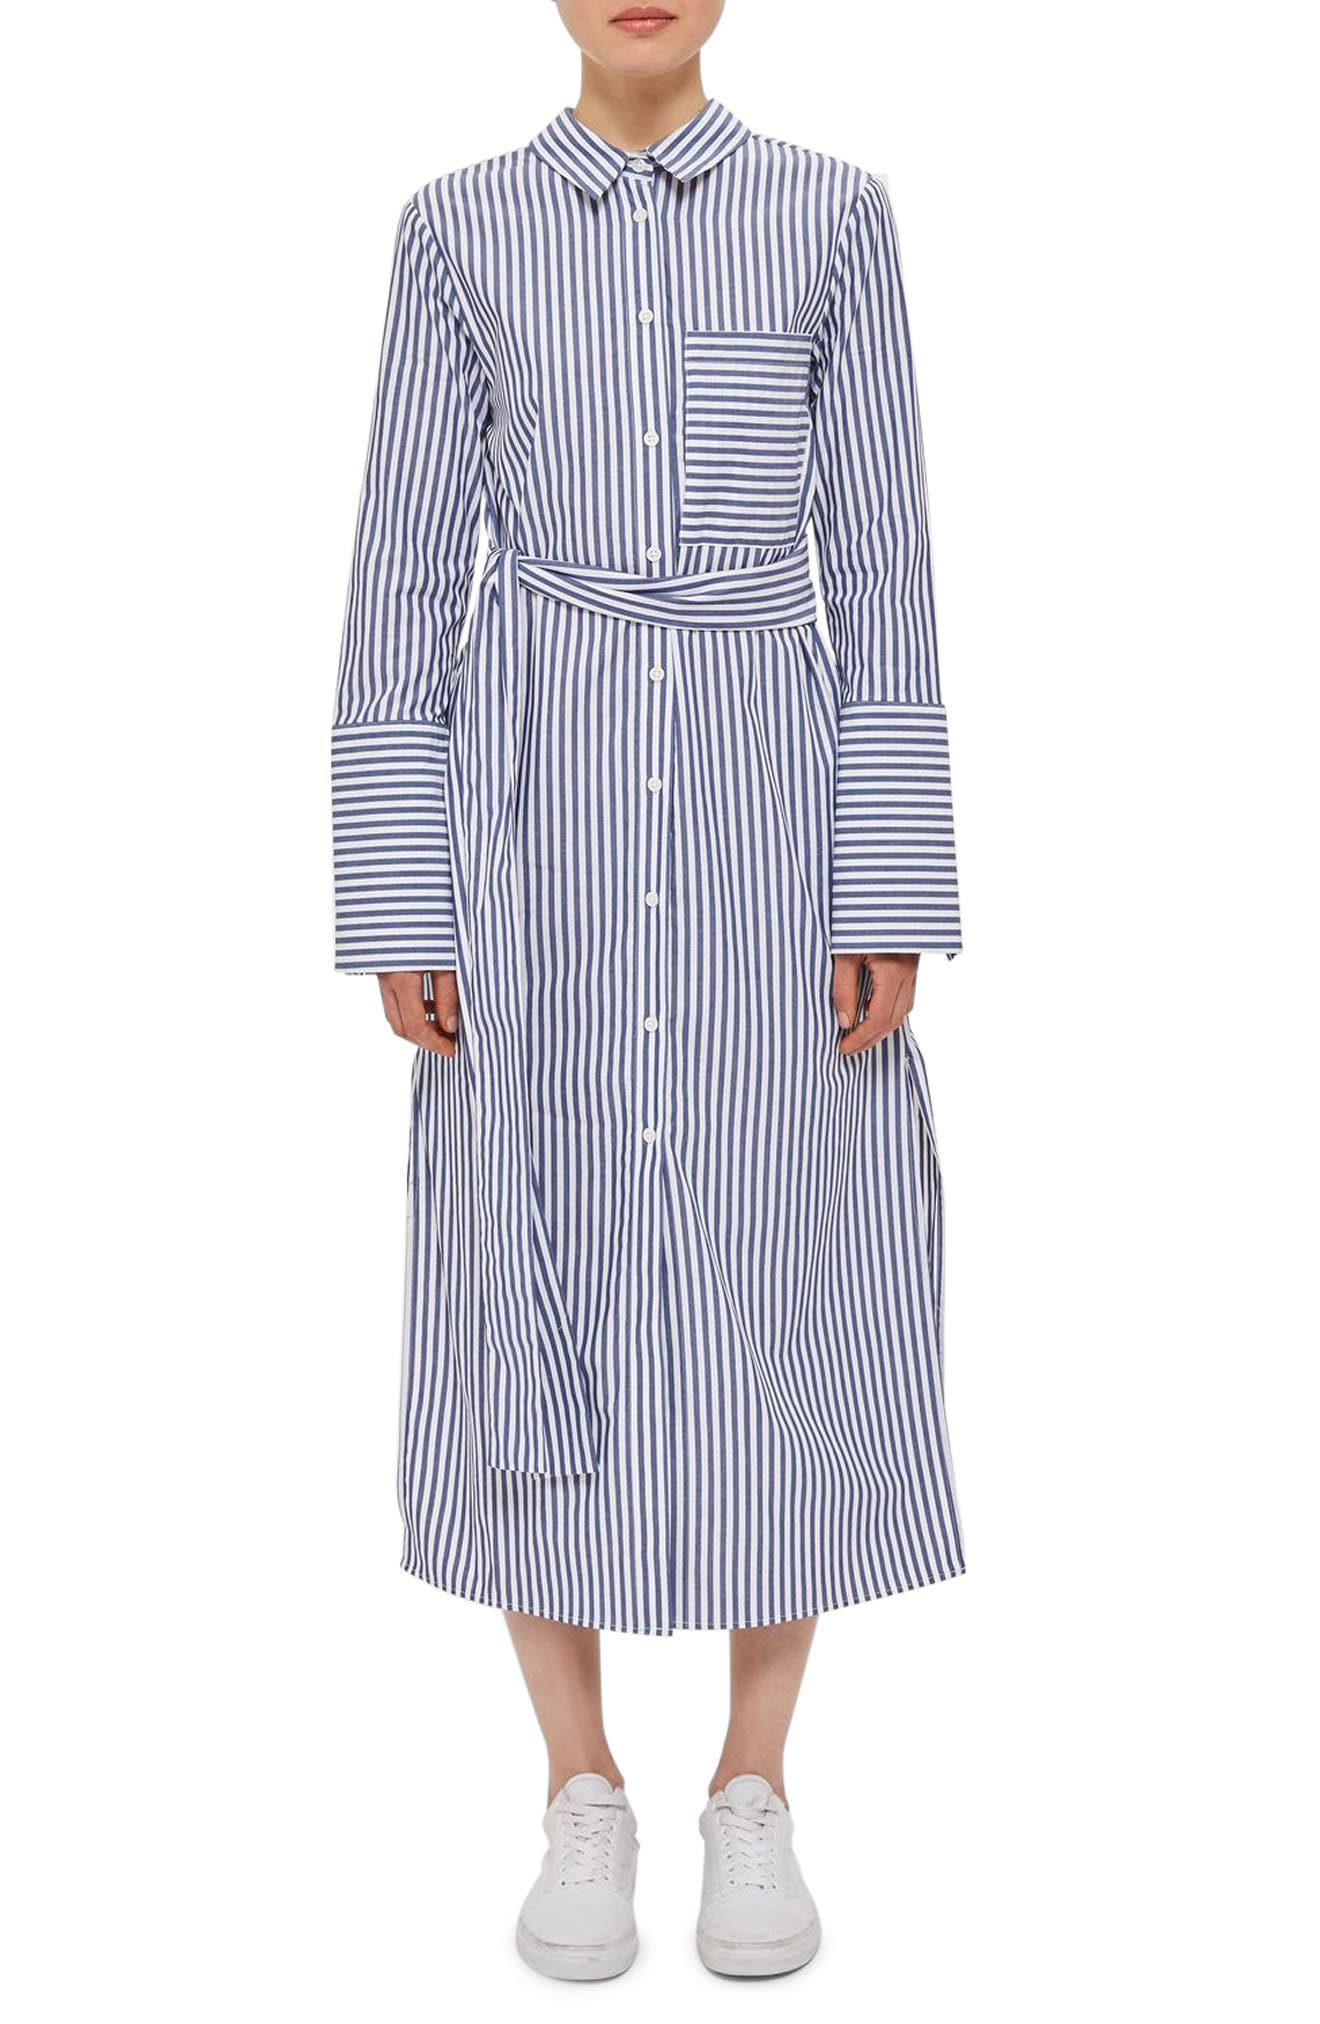 Topshop Boutique Stripe Shirtdress